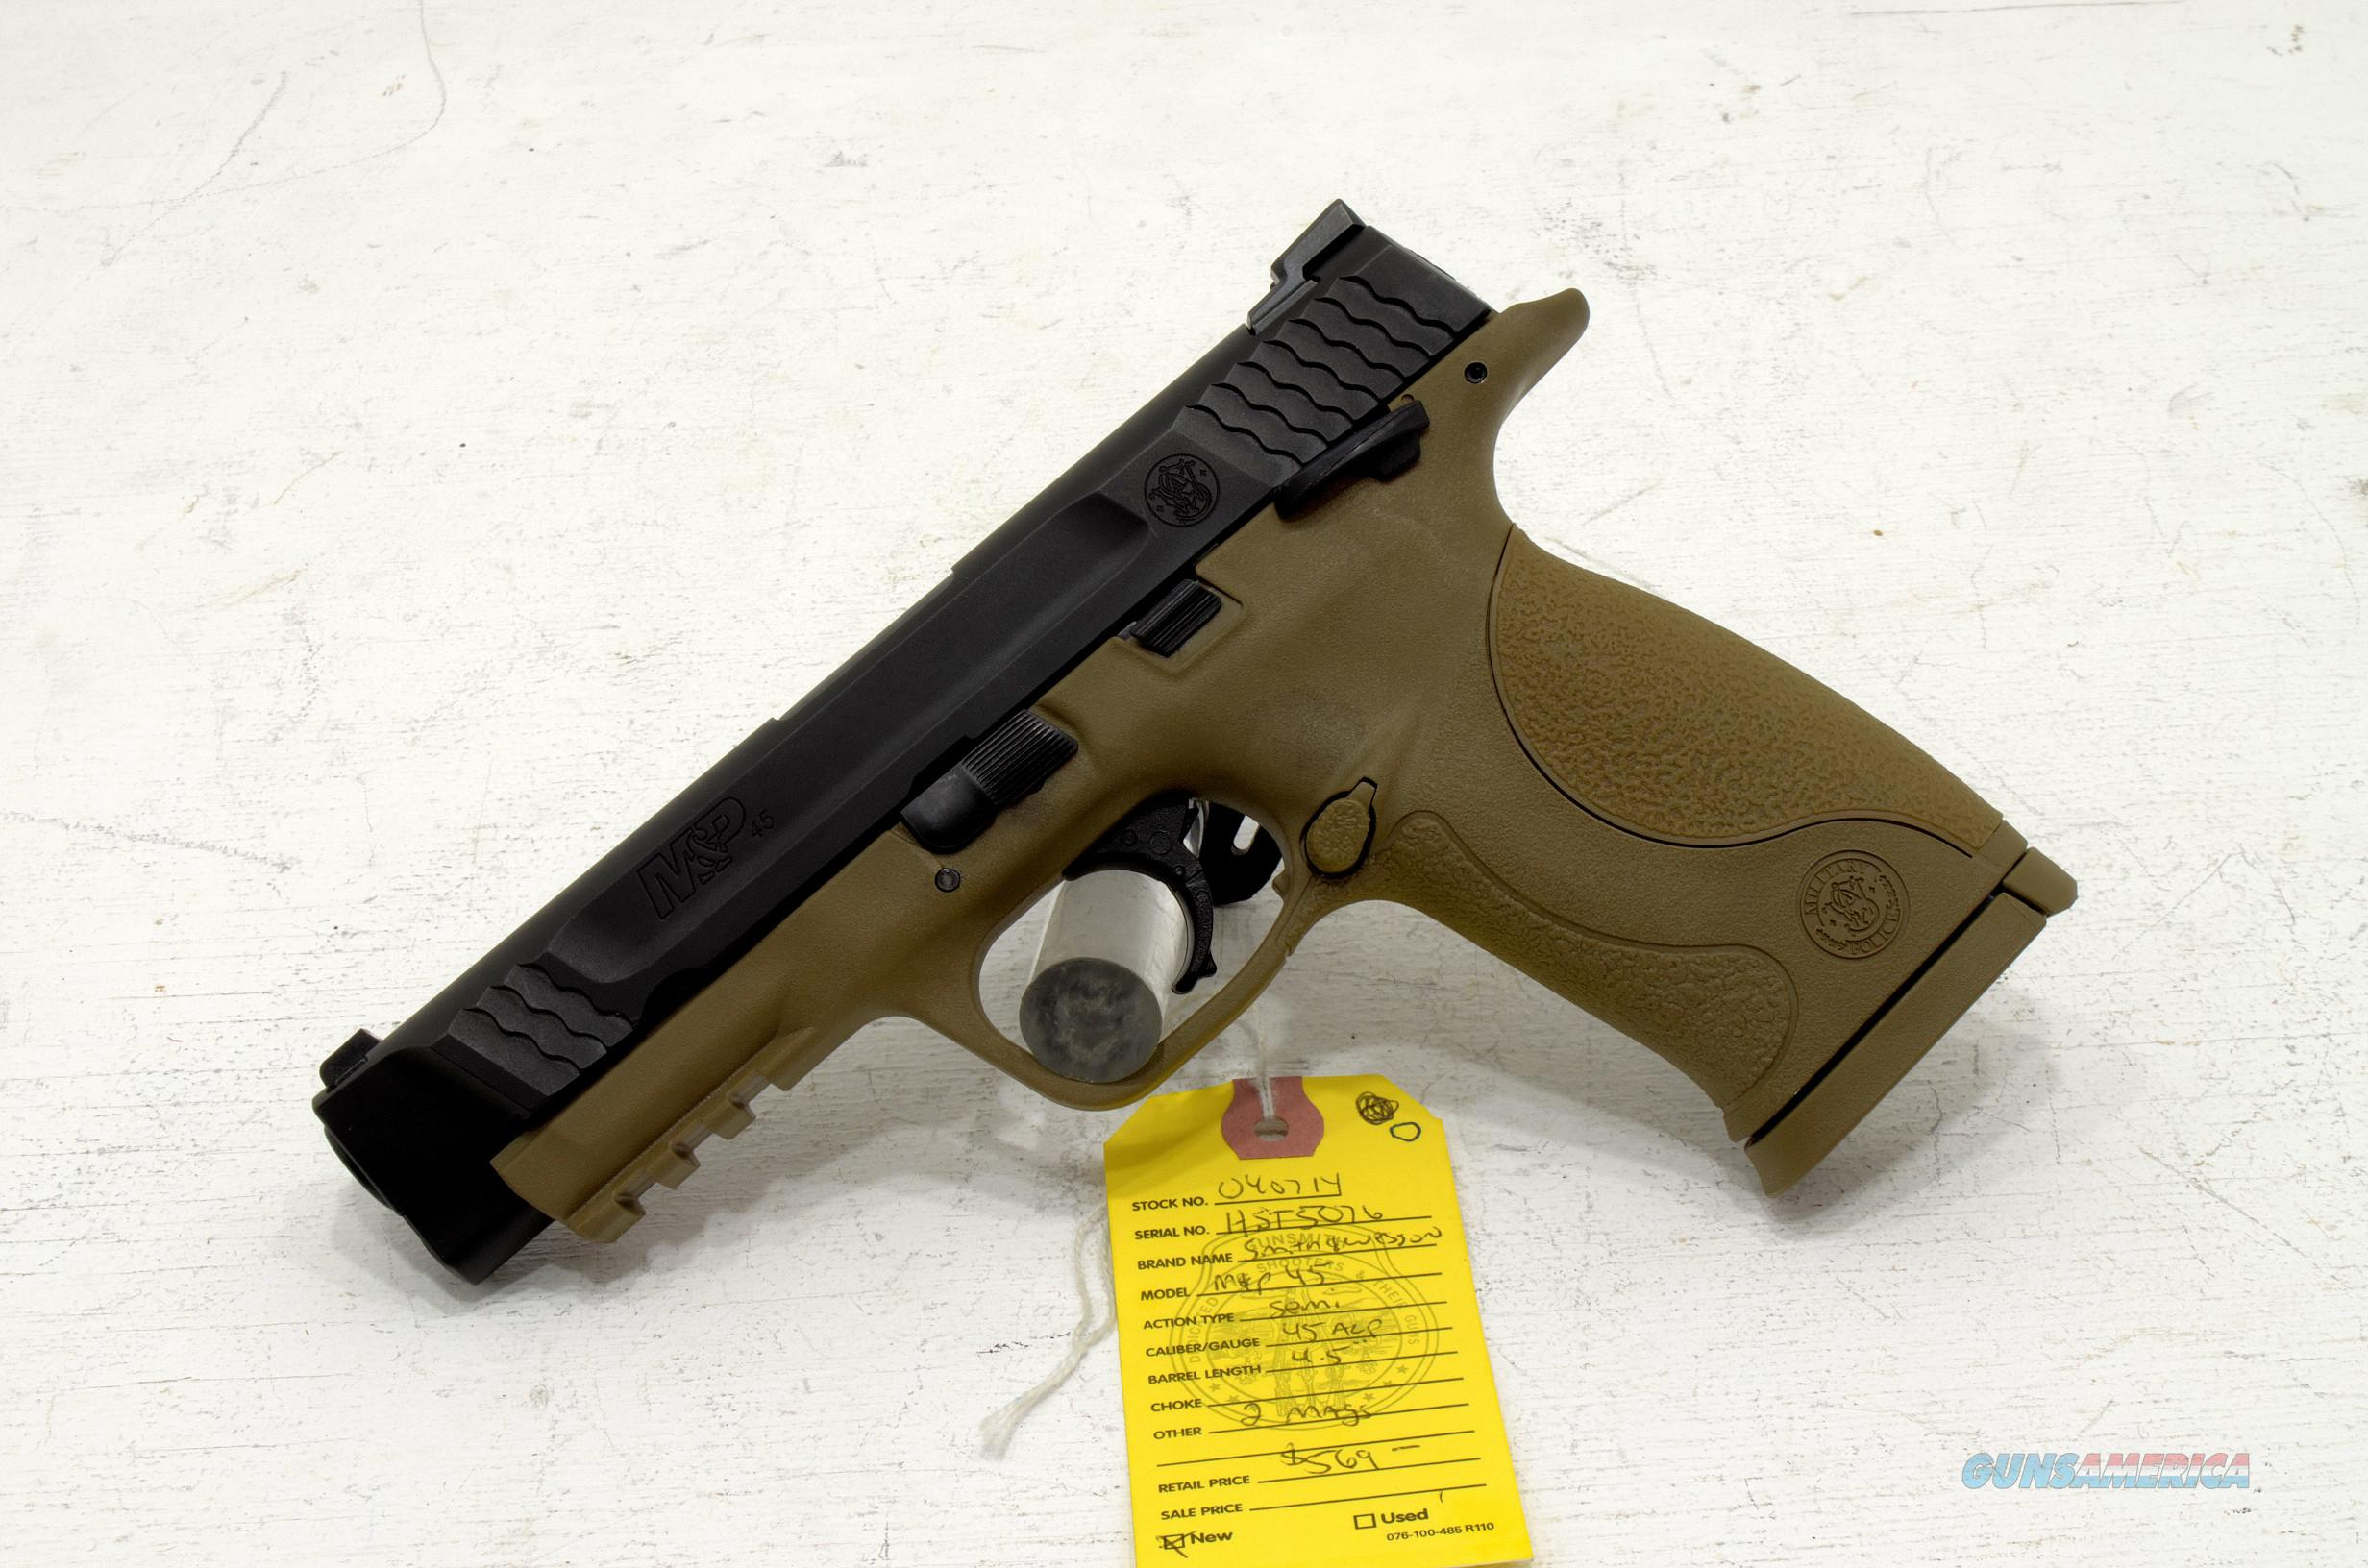 NEW SMITH & WESSON M&P45 FDE .45ACP  Guns > Pistols > Smith & Wesson Pistols - Autos > Polymer Frame